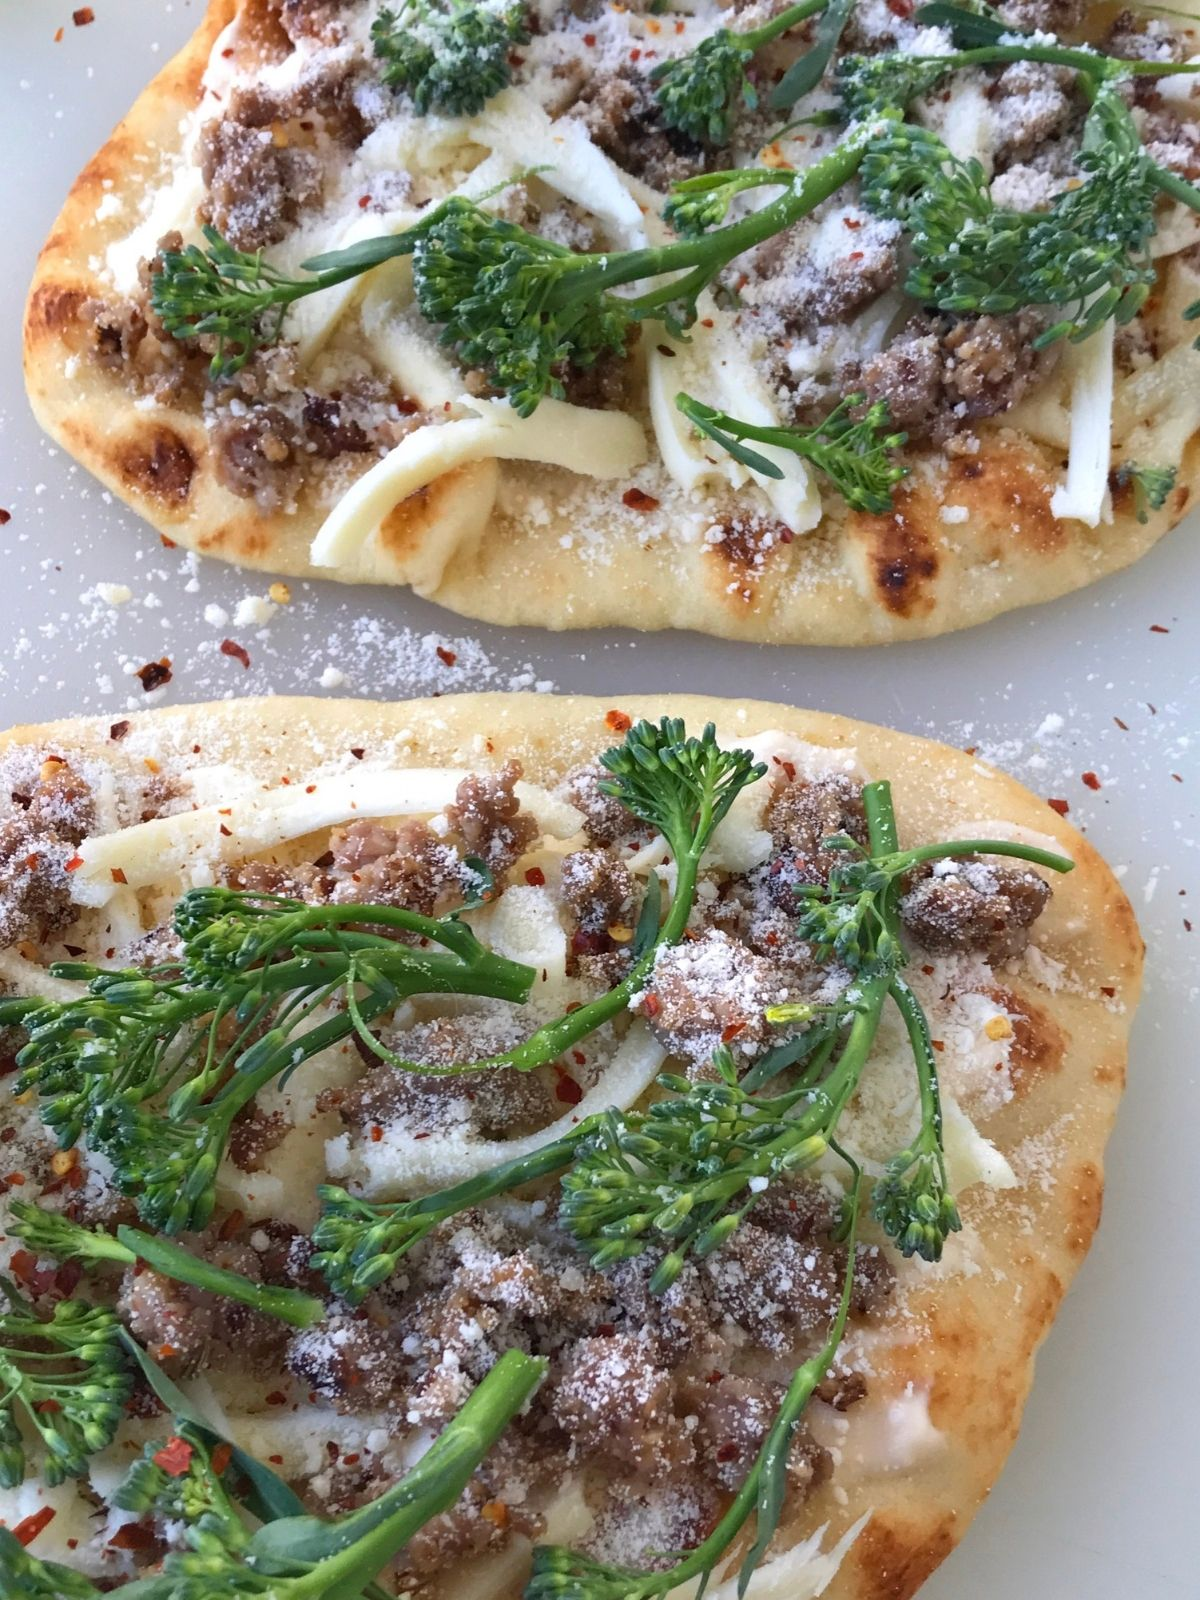 naan bread topped with sausage and broccolini